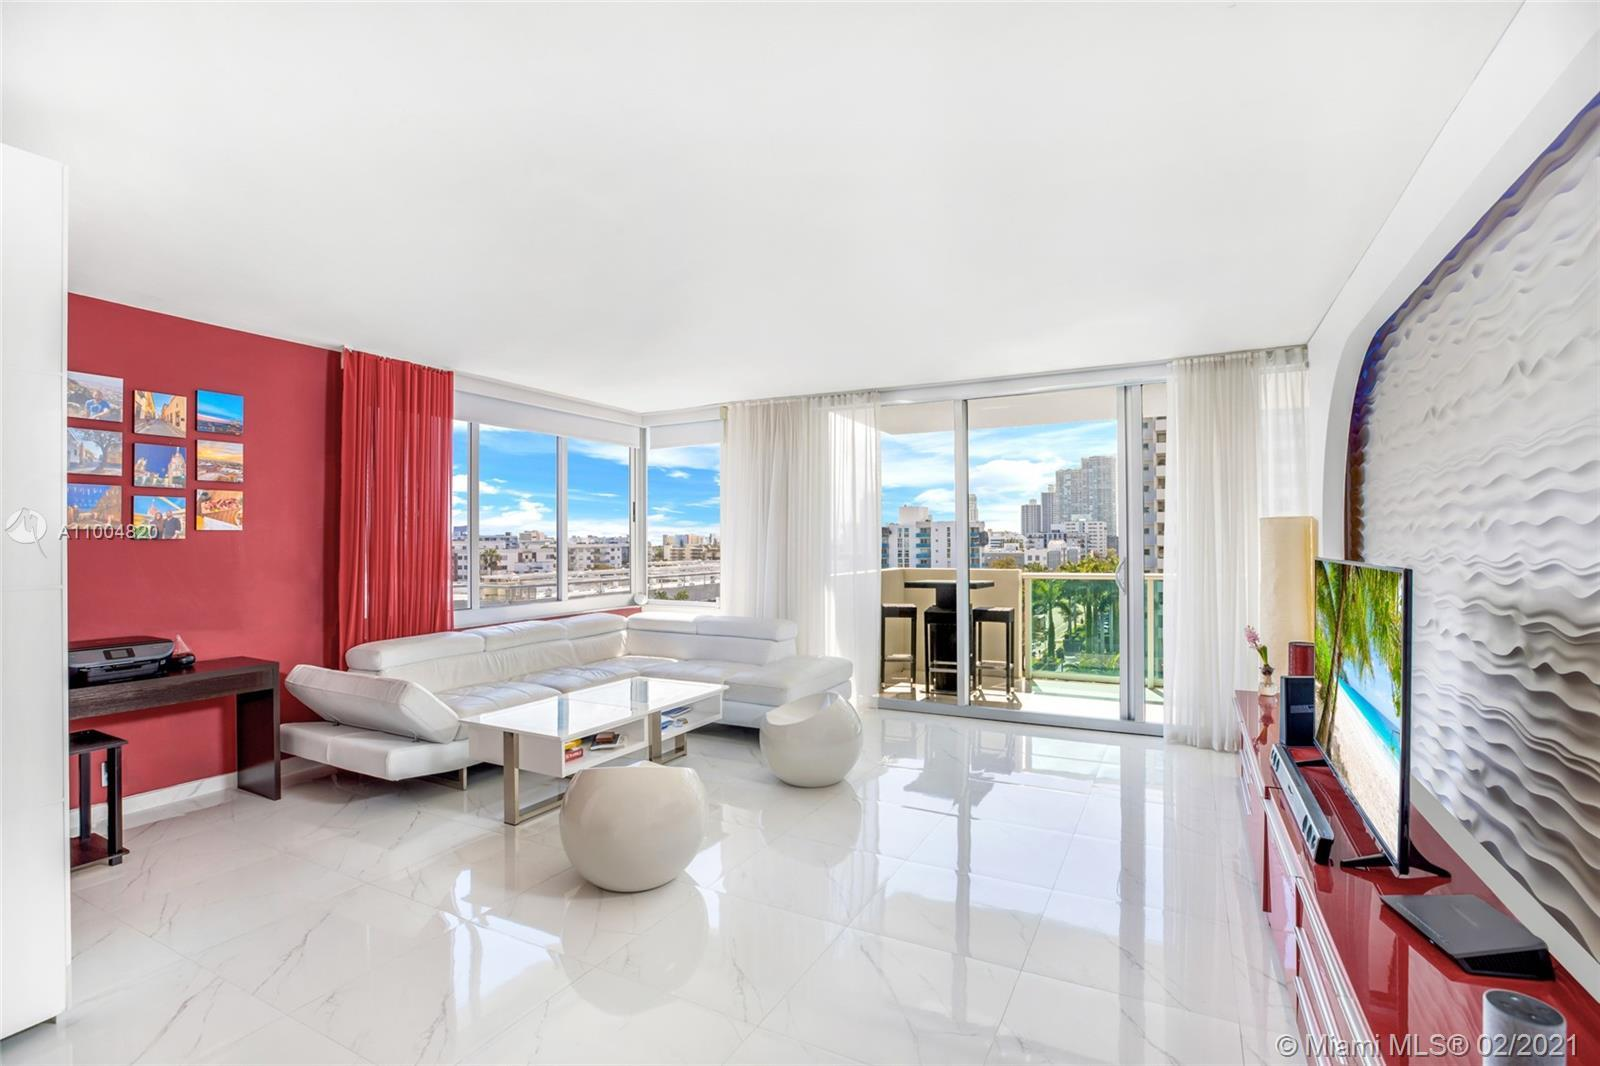 SIMPLY STUNNING..This Bright Corner Unit with Spacious Design and almost 1000 sqft of space. One of